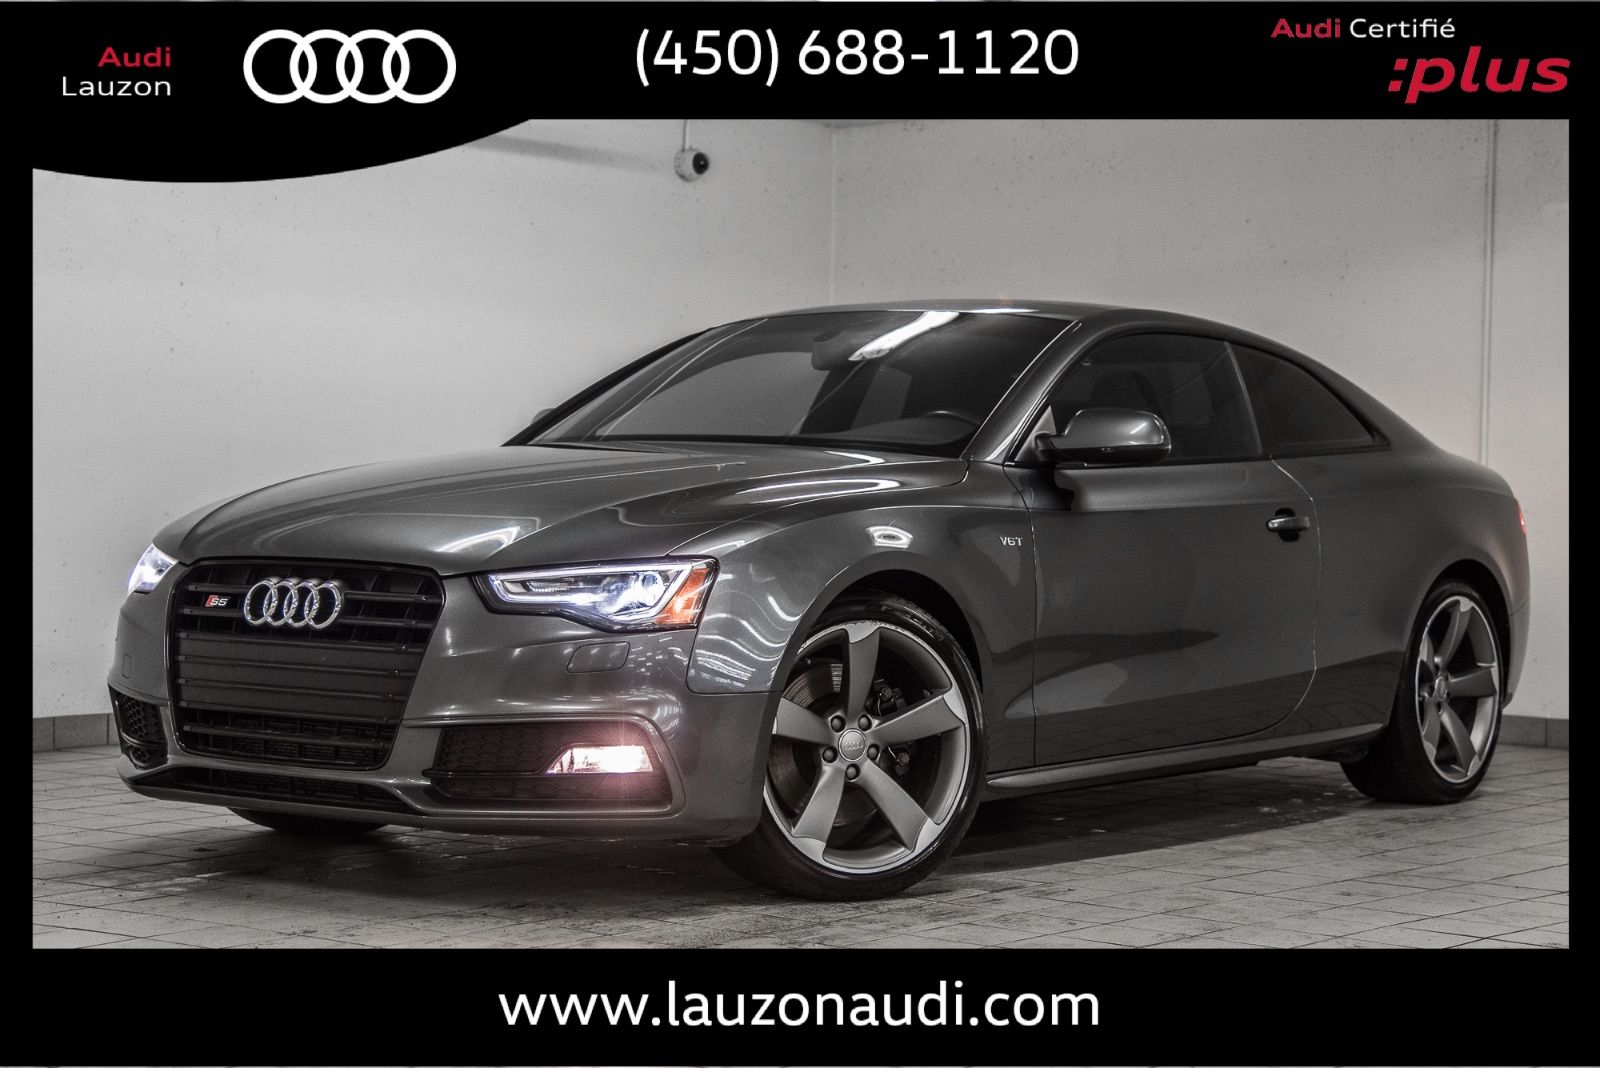 Audi Lauzon Pre Owned 2016 Audi S5 Progressiv Plus Black Optics Carbon Rotors For Sale In Laval